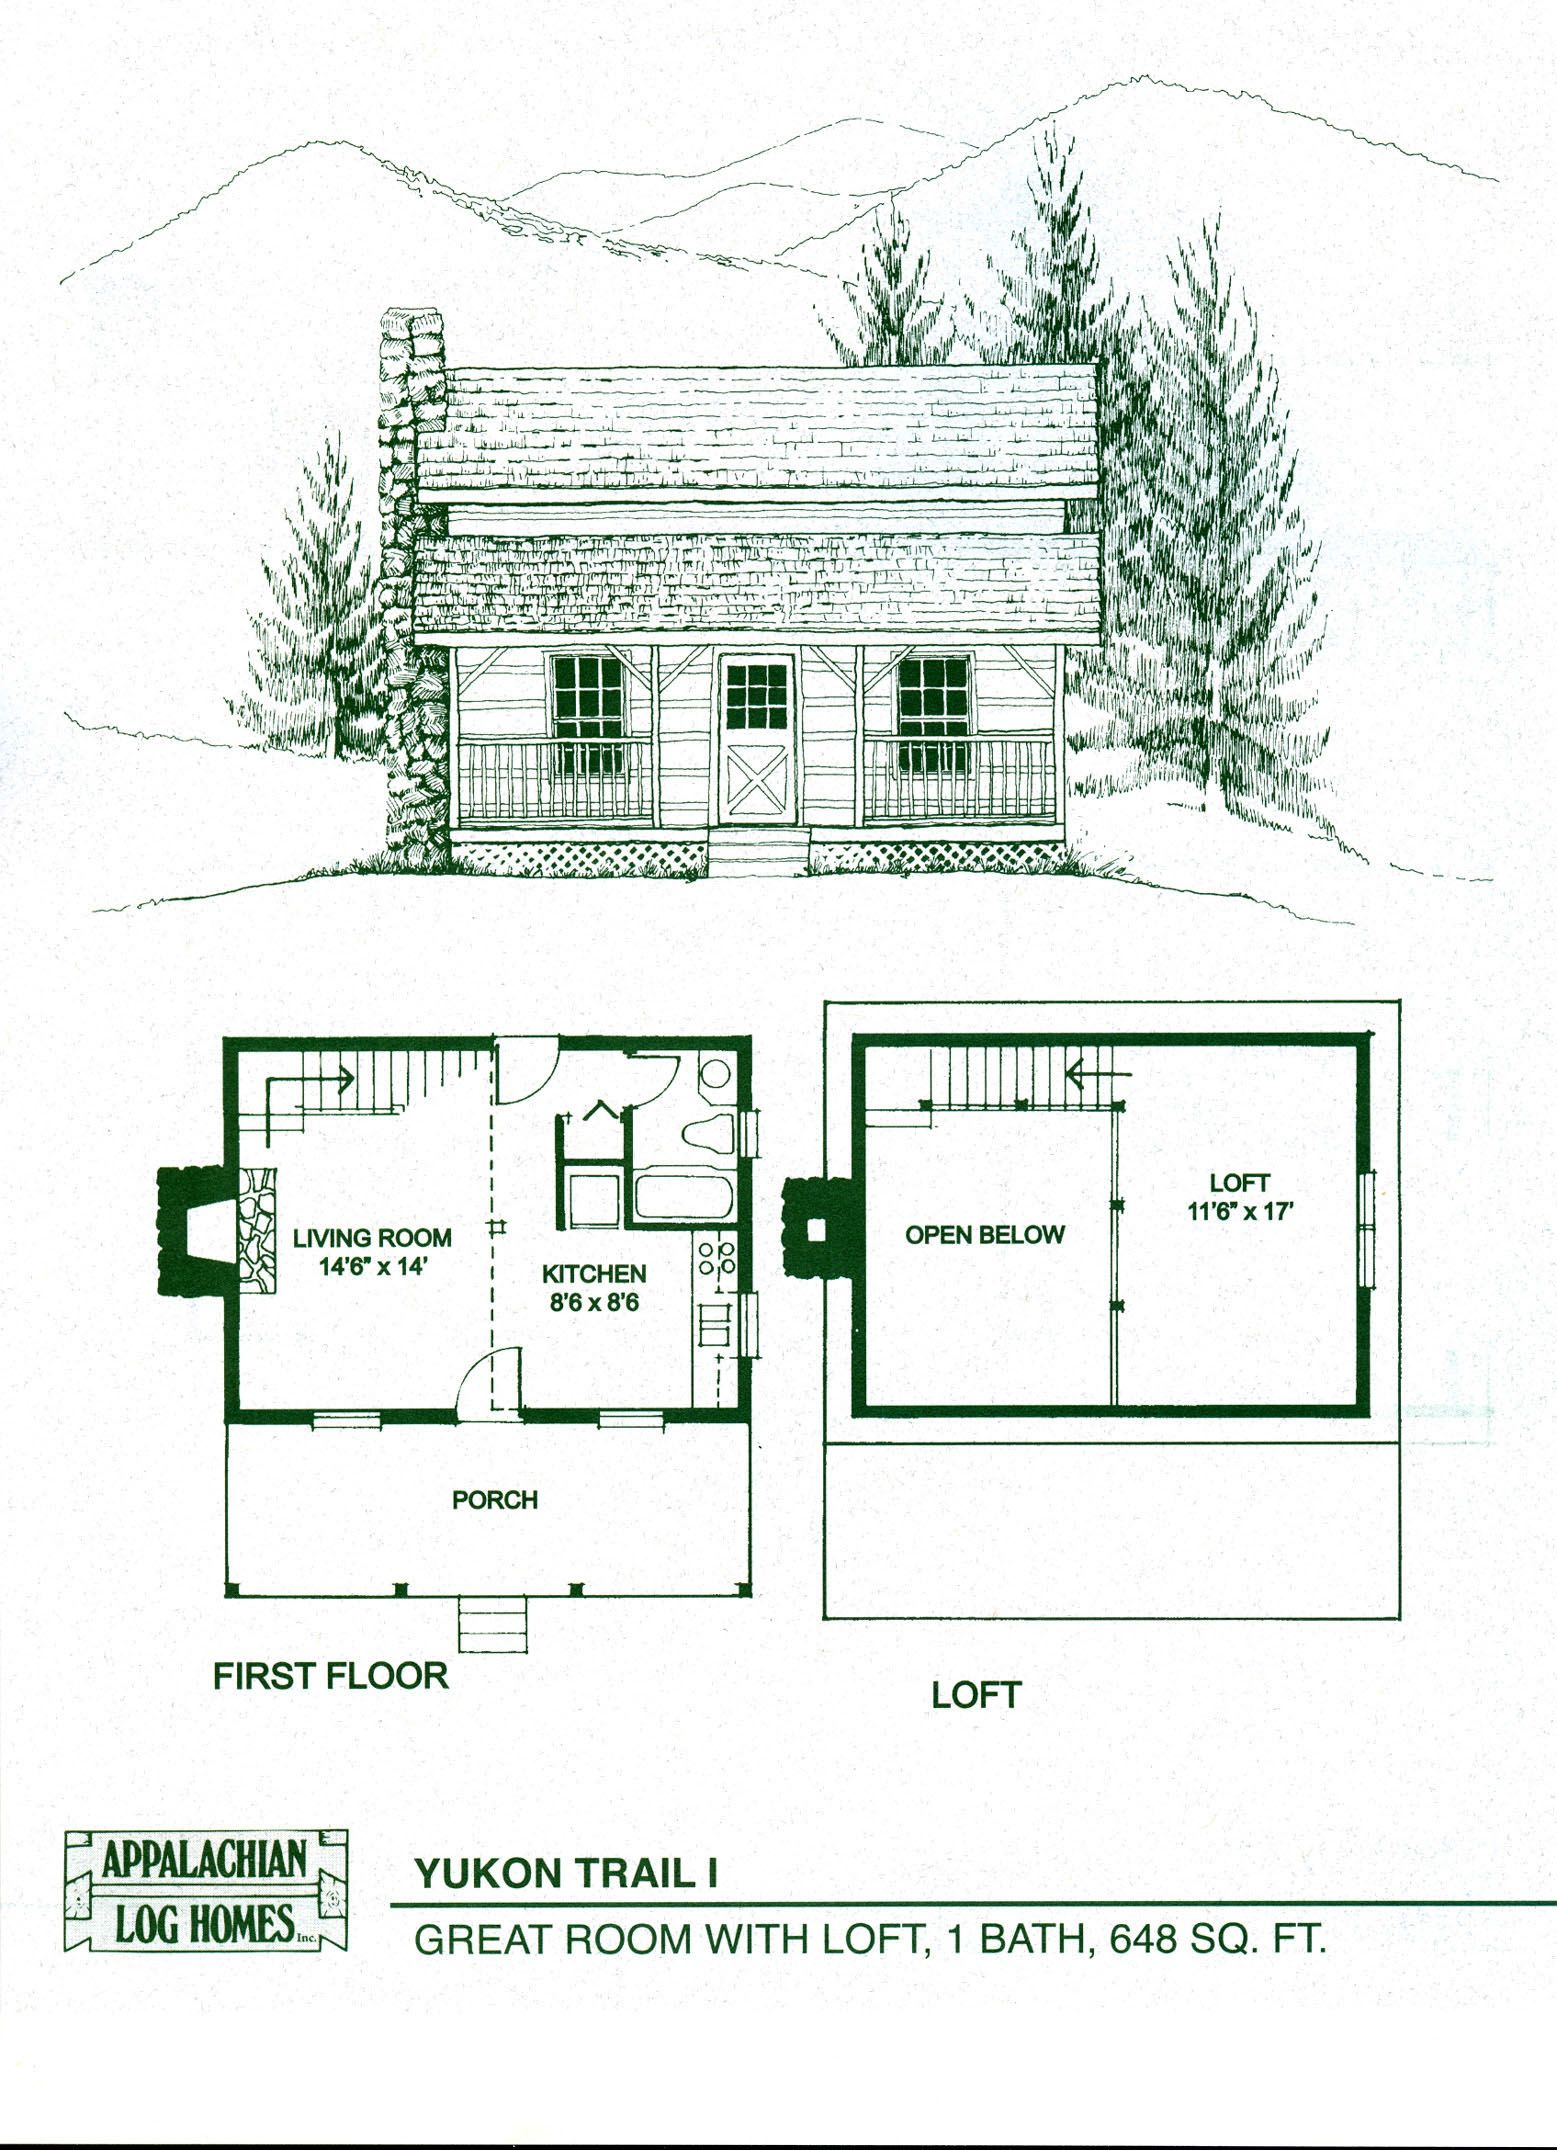 Log home floor plans log cabin kits appalachian log for Log home house floor plans